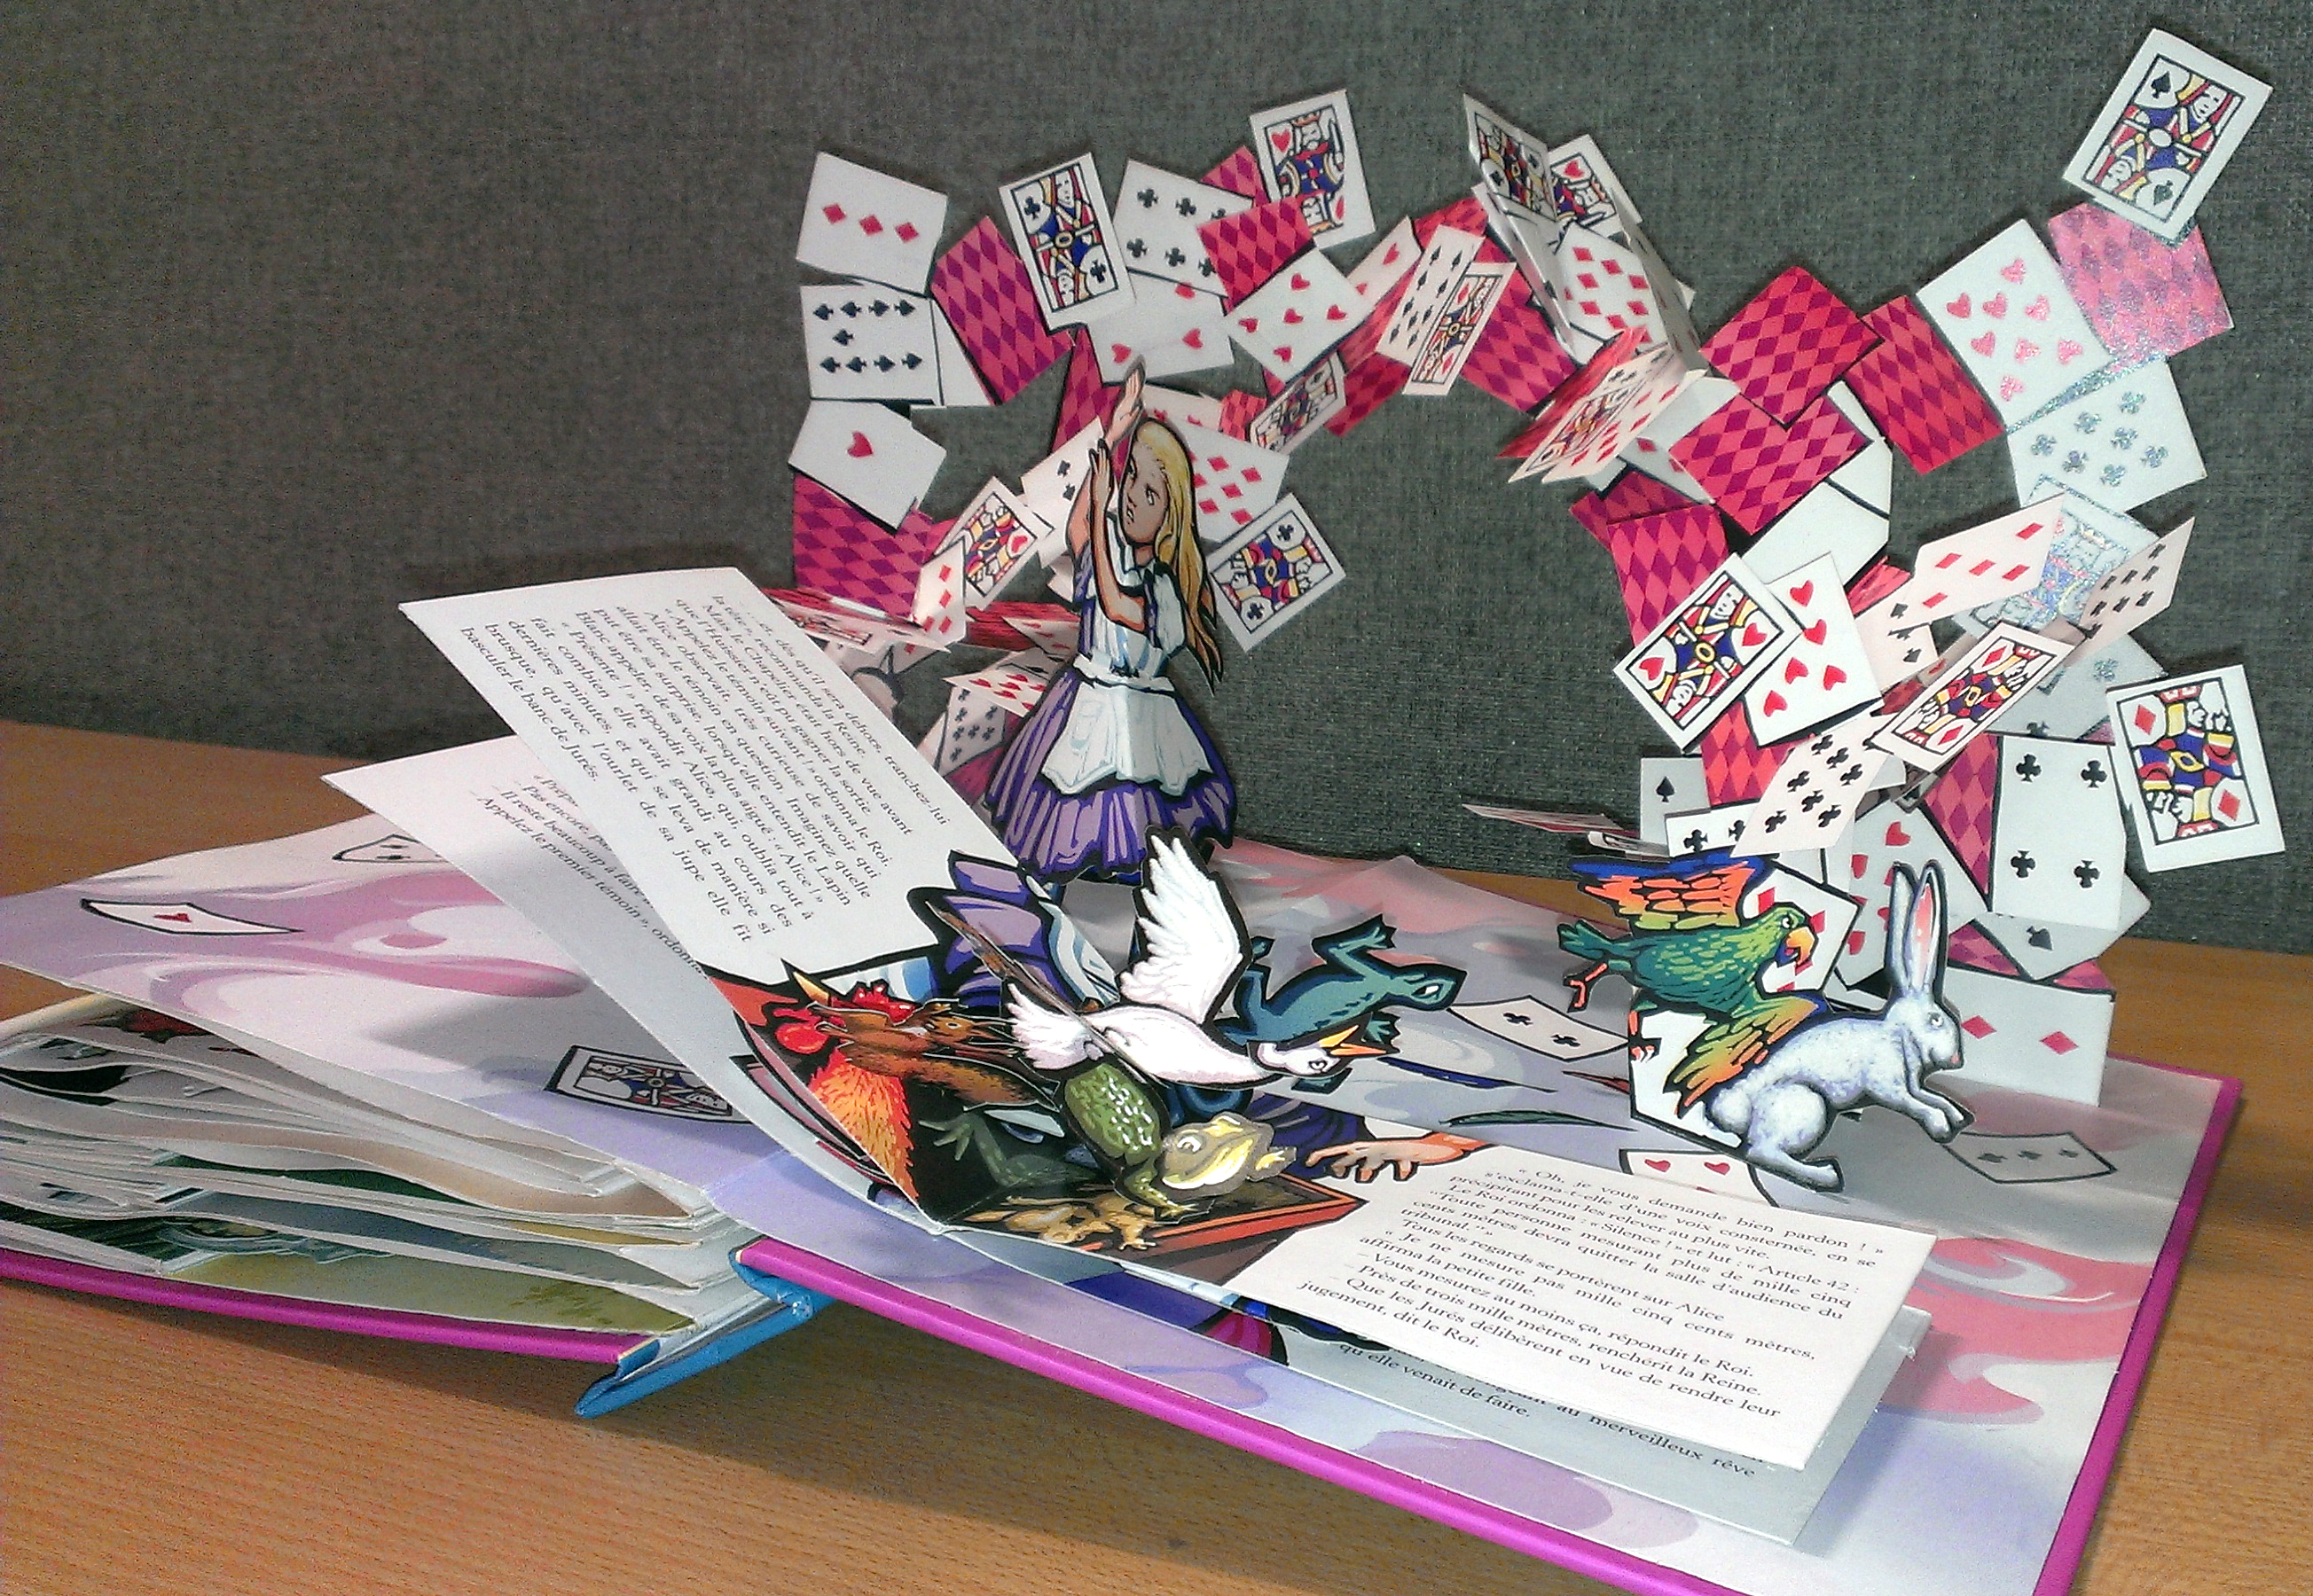 Alice In Wonderland Collection Comes To Homerton Library